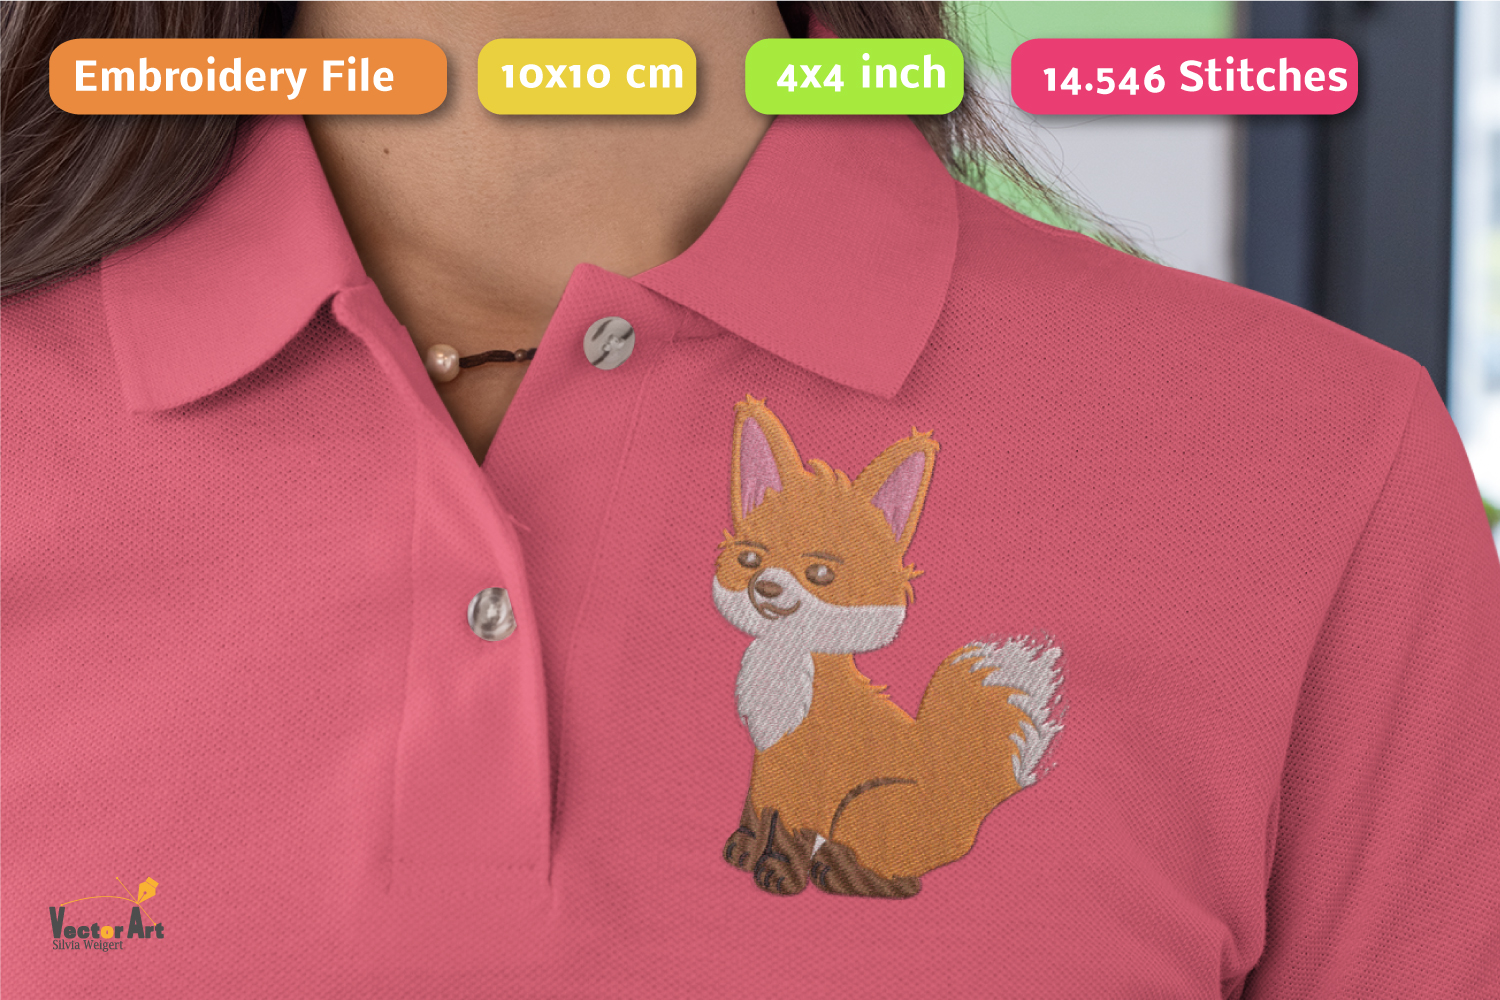 Fox - Embroidery File - 4x4 inch example image 3